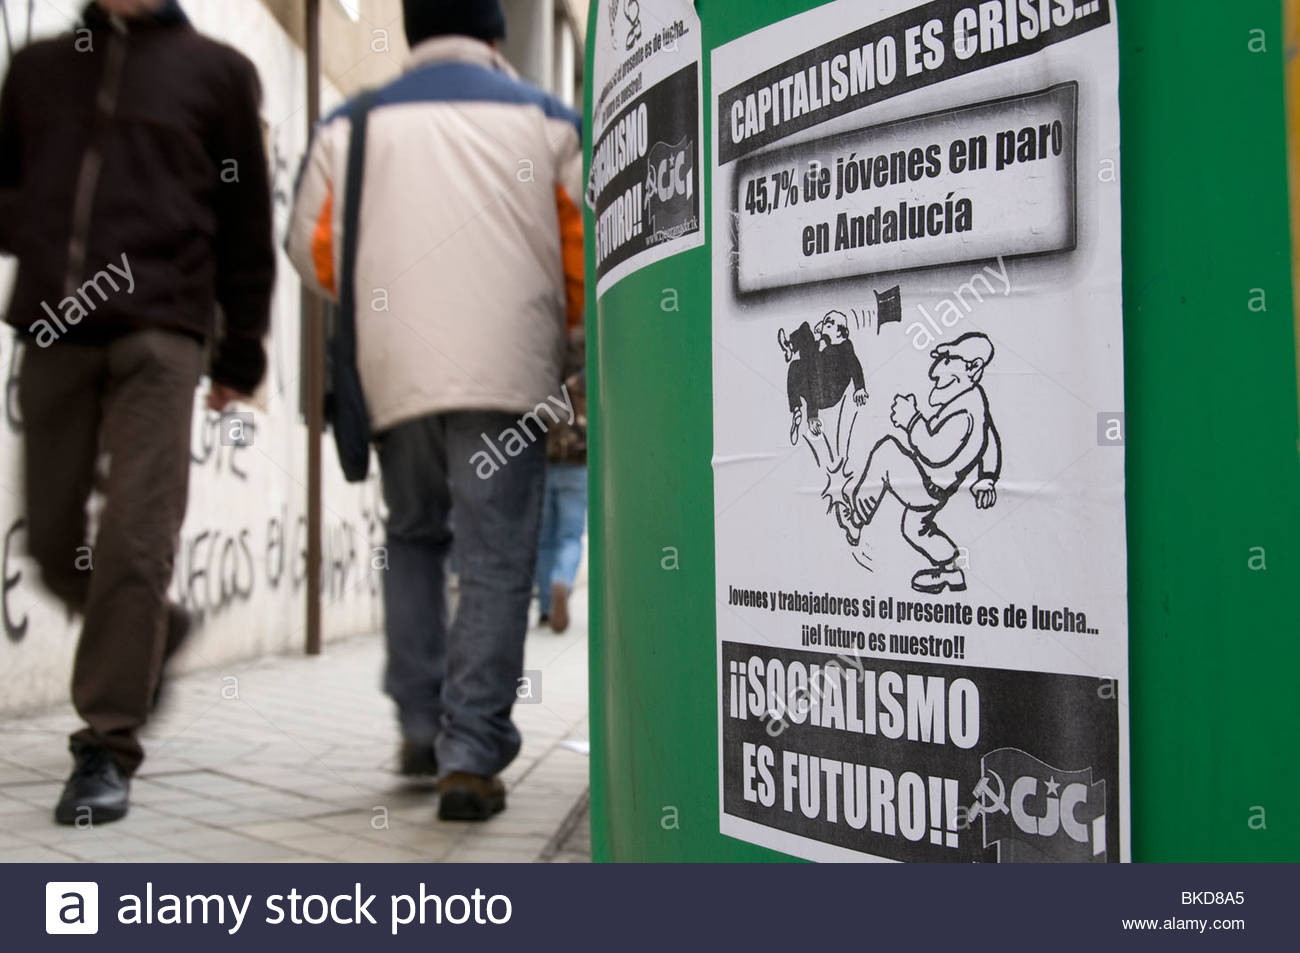 Poster by  spanish communist party denouncing the fact that youth (under 25s) unemployment has reached 45% in Andalucia - Stock Image